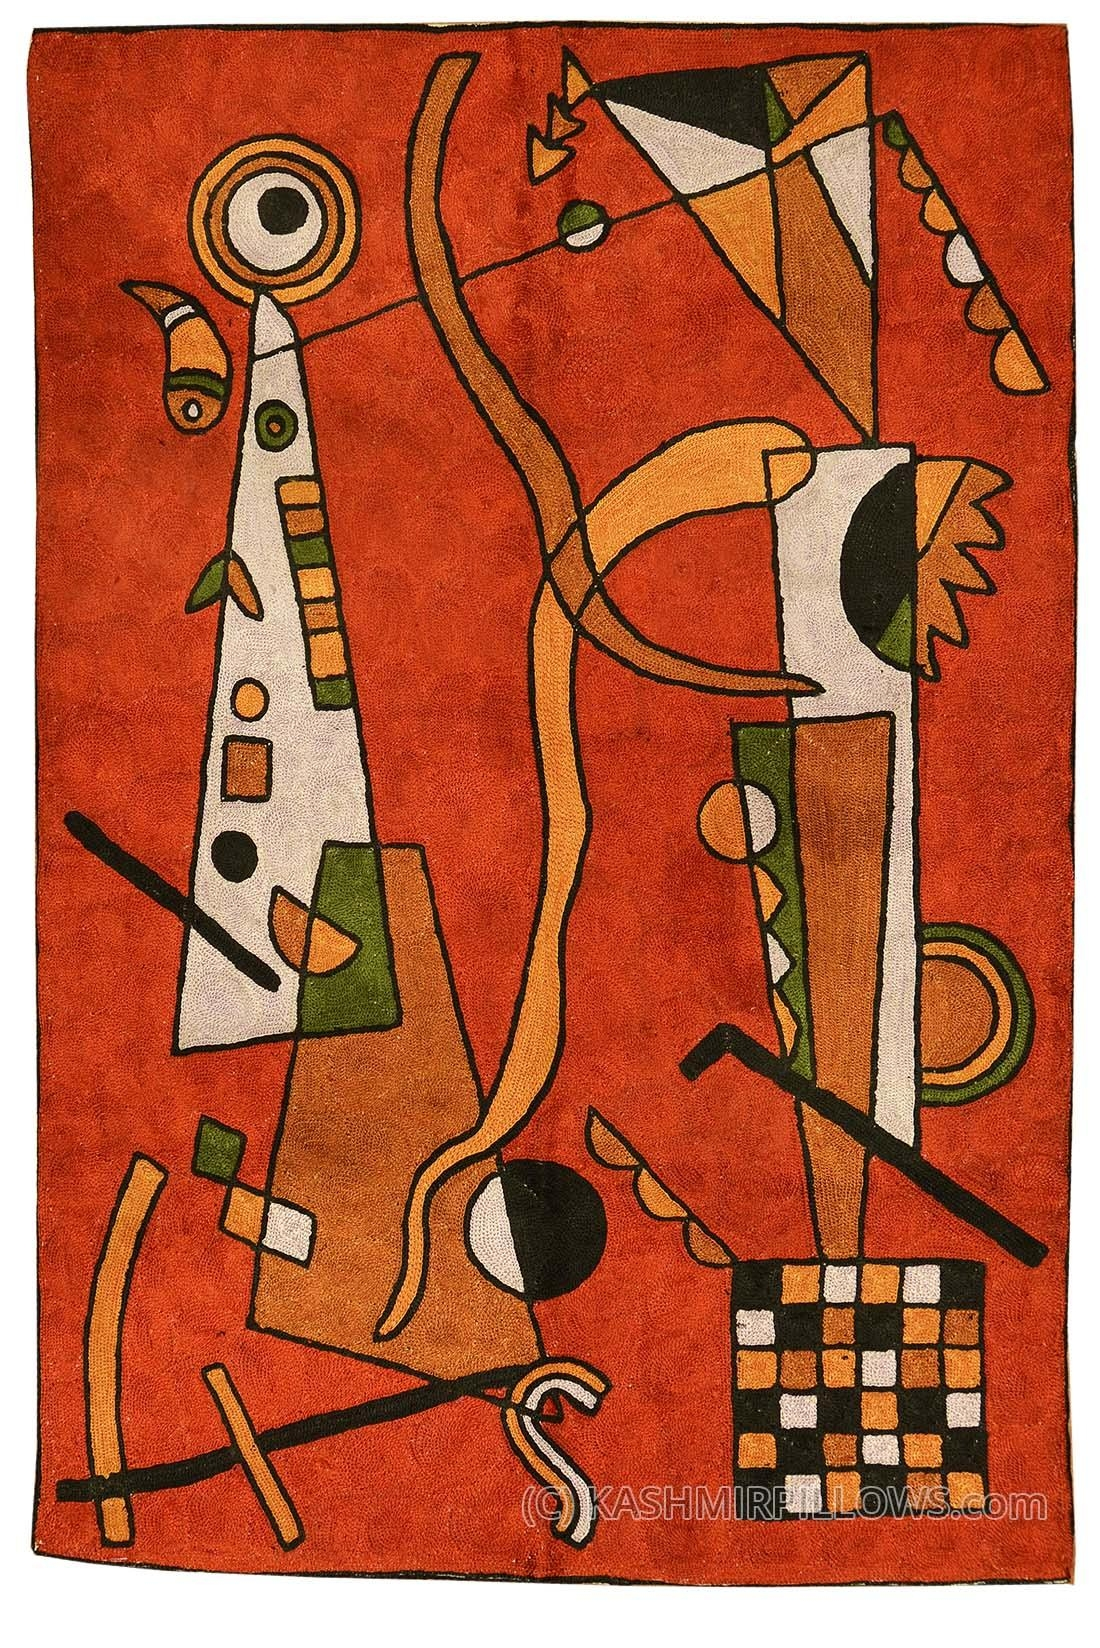 Kandinsky Rugs / Wall Art | Product Categories | Kashmir Pillows Intended For Burgundy Wall Art (Image 10 of 20)